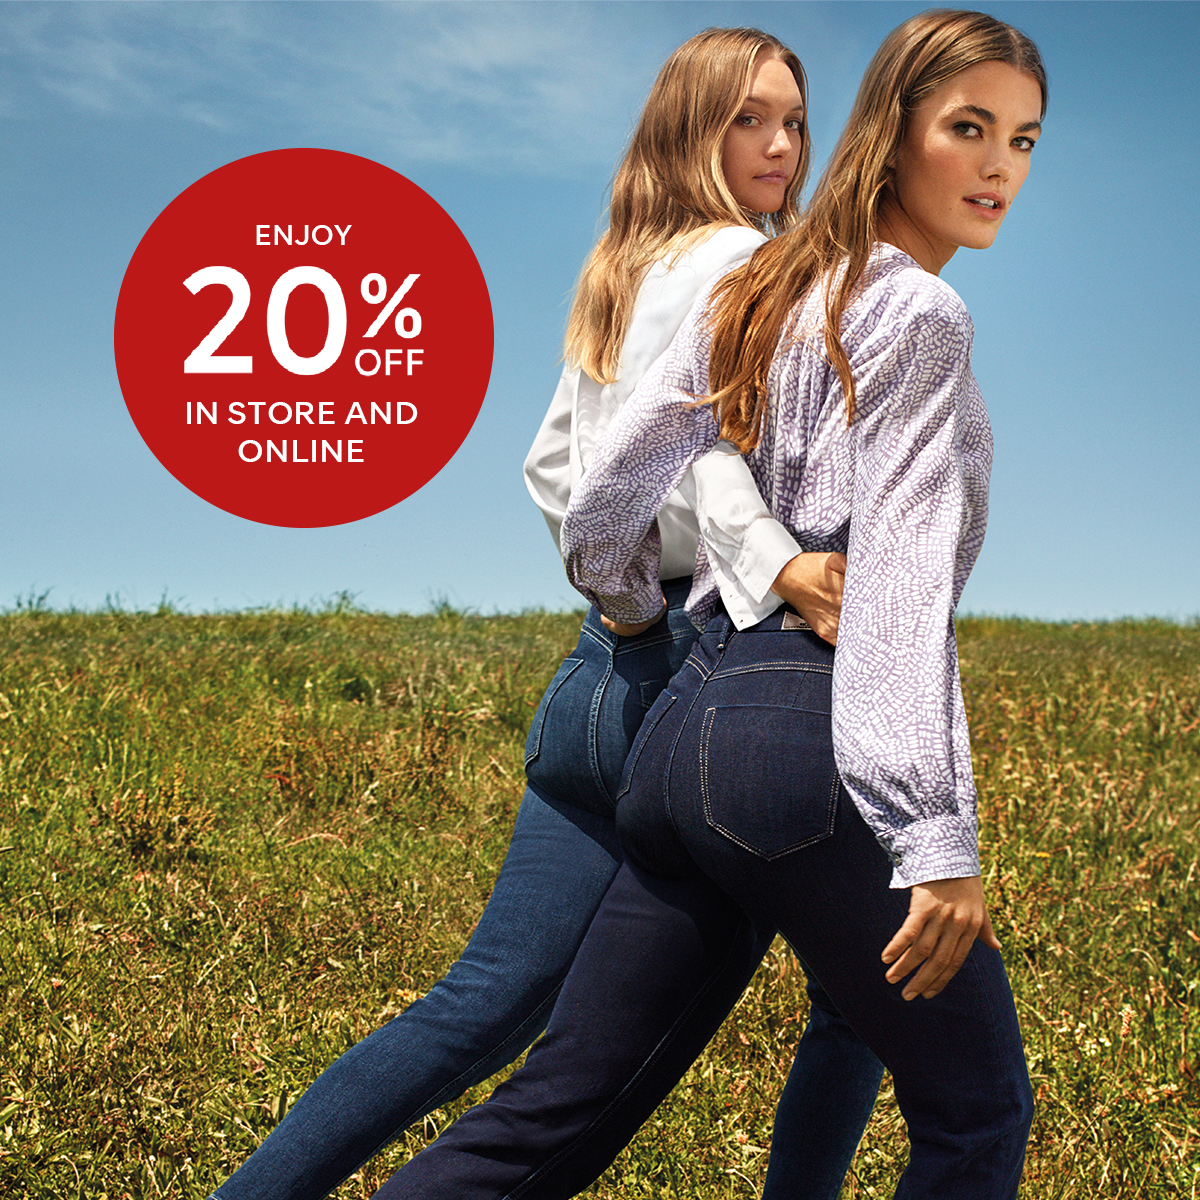 Enjoy 20% off in store and online